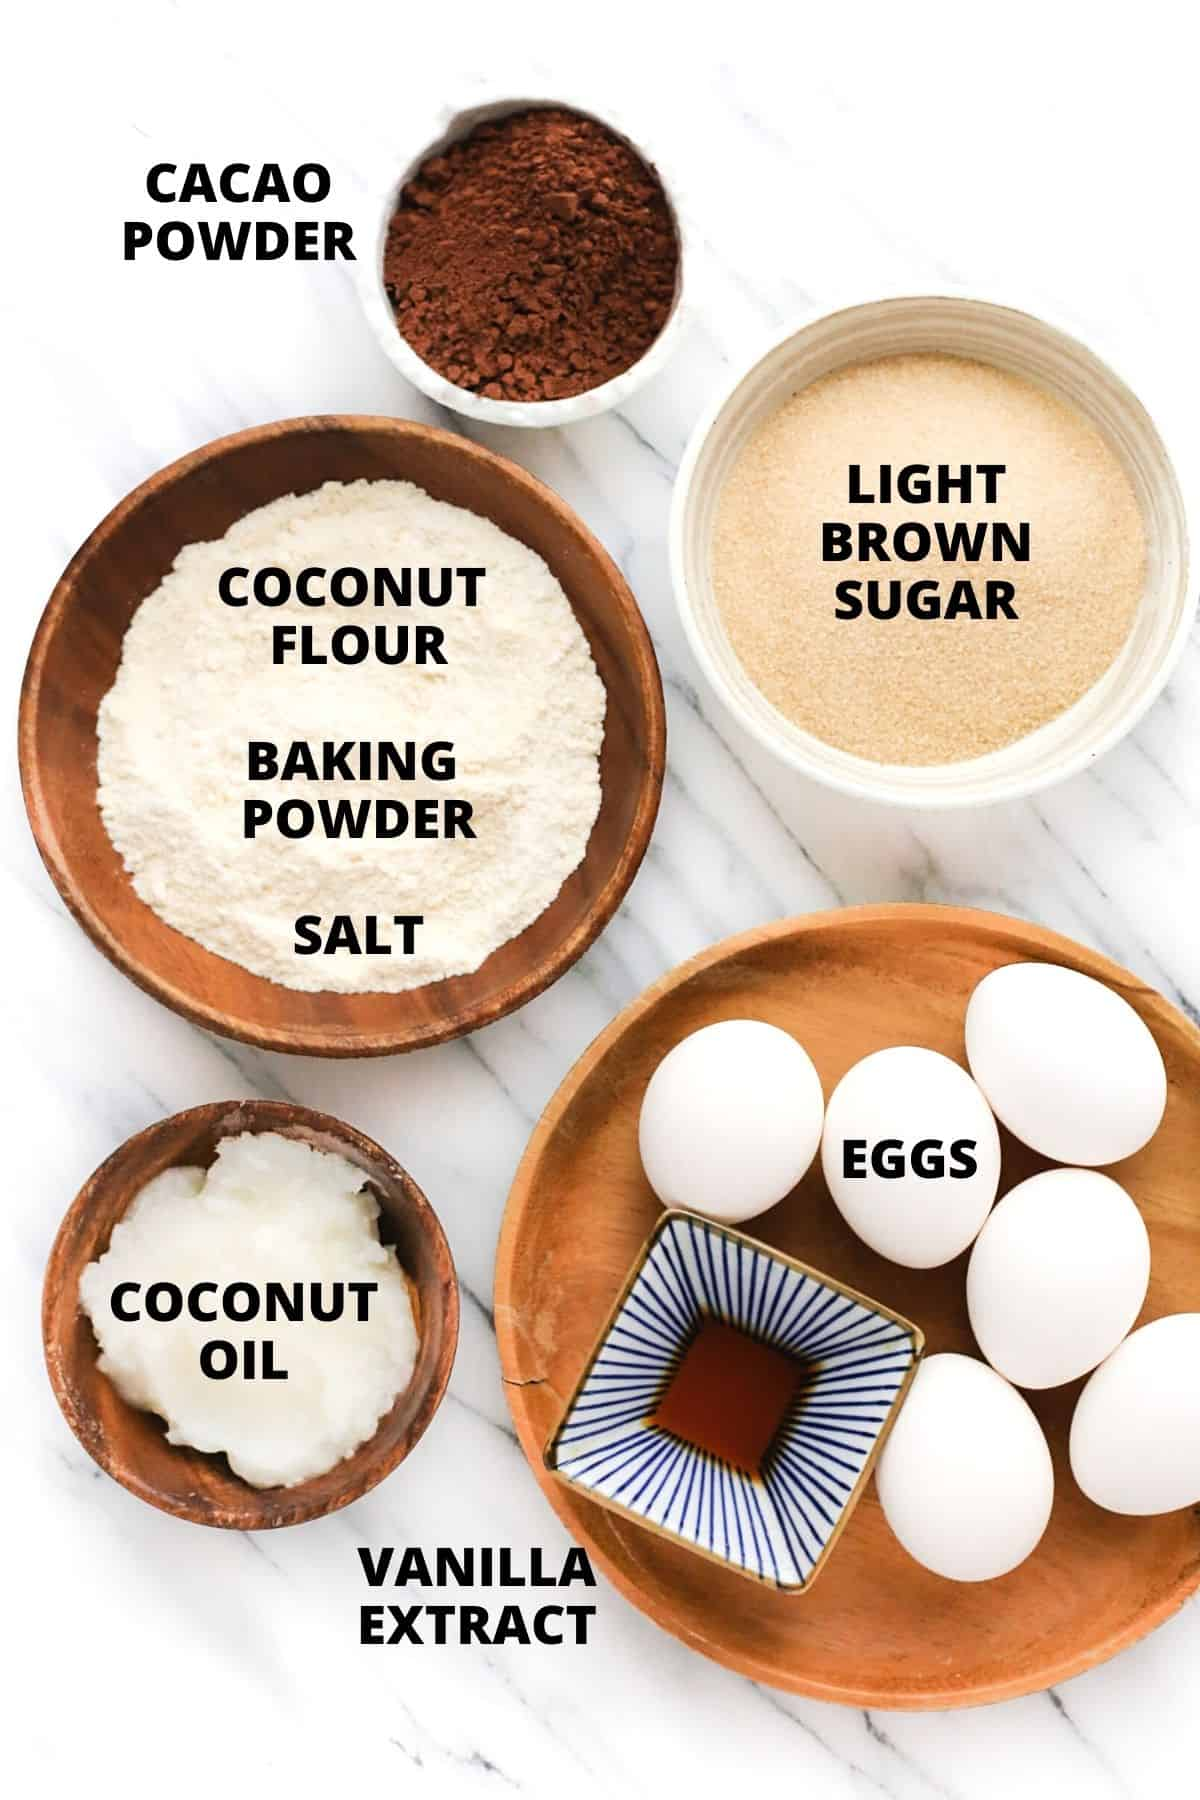 Labeled ingredients for flourless chocolate cake set out on a marble board.